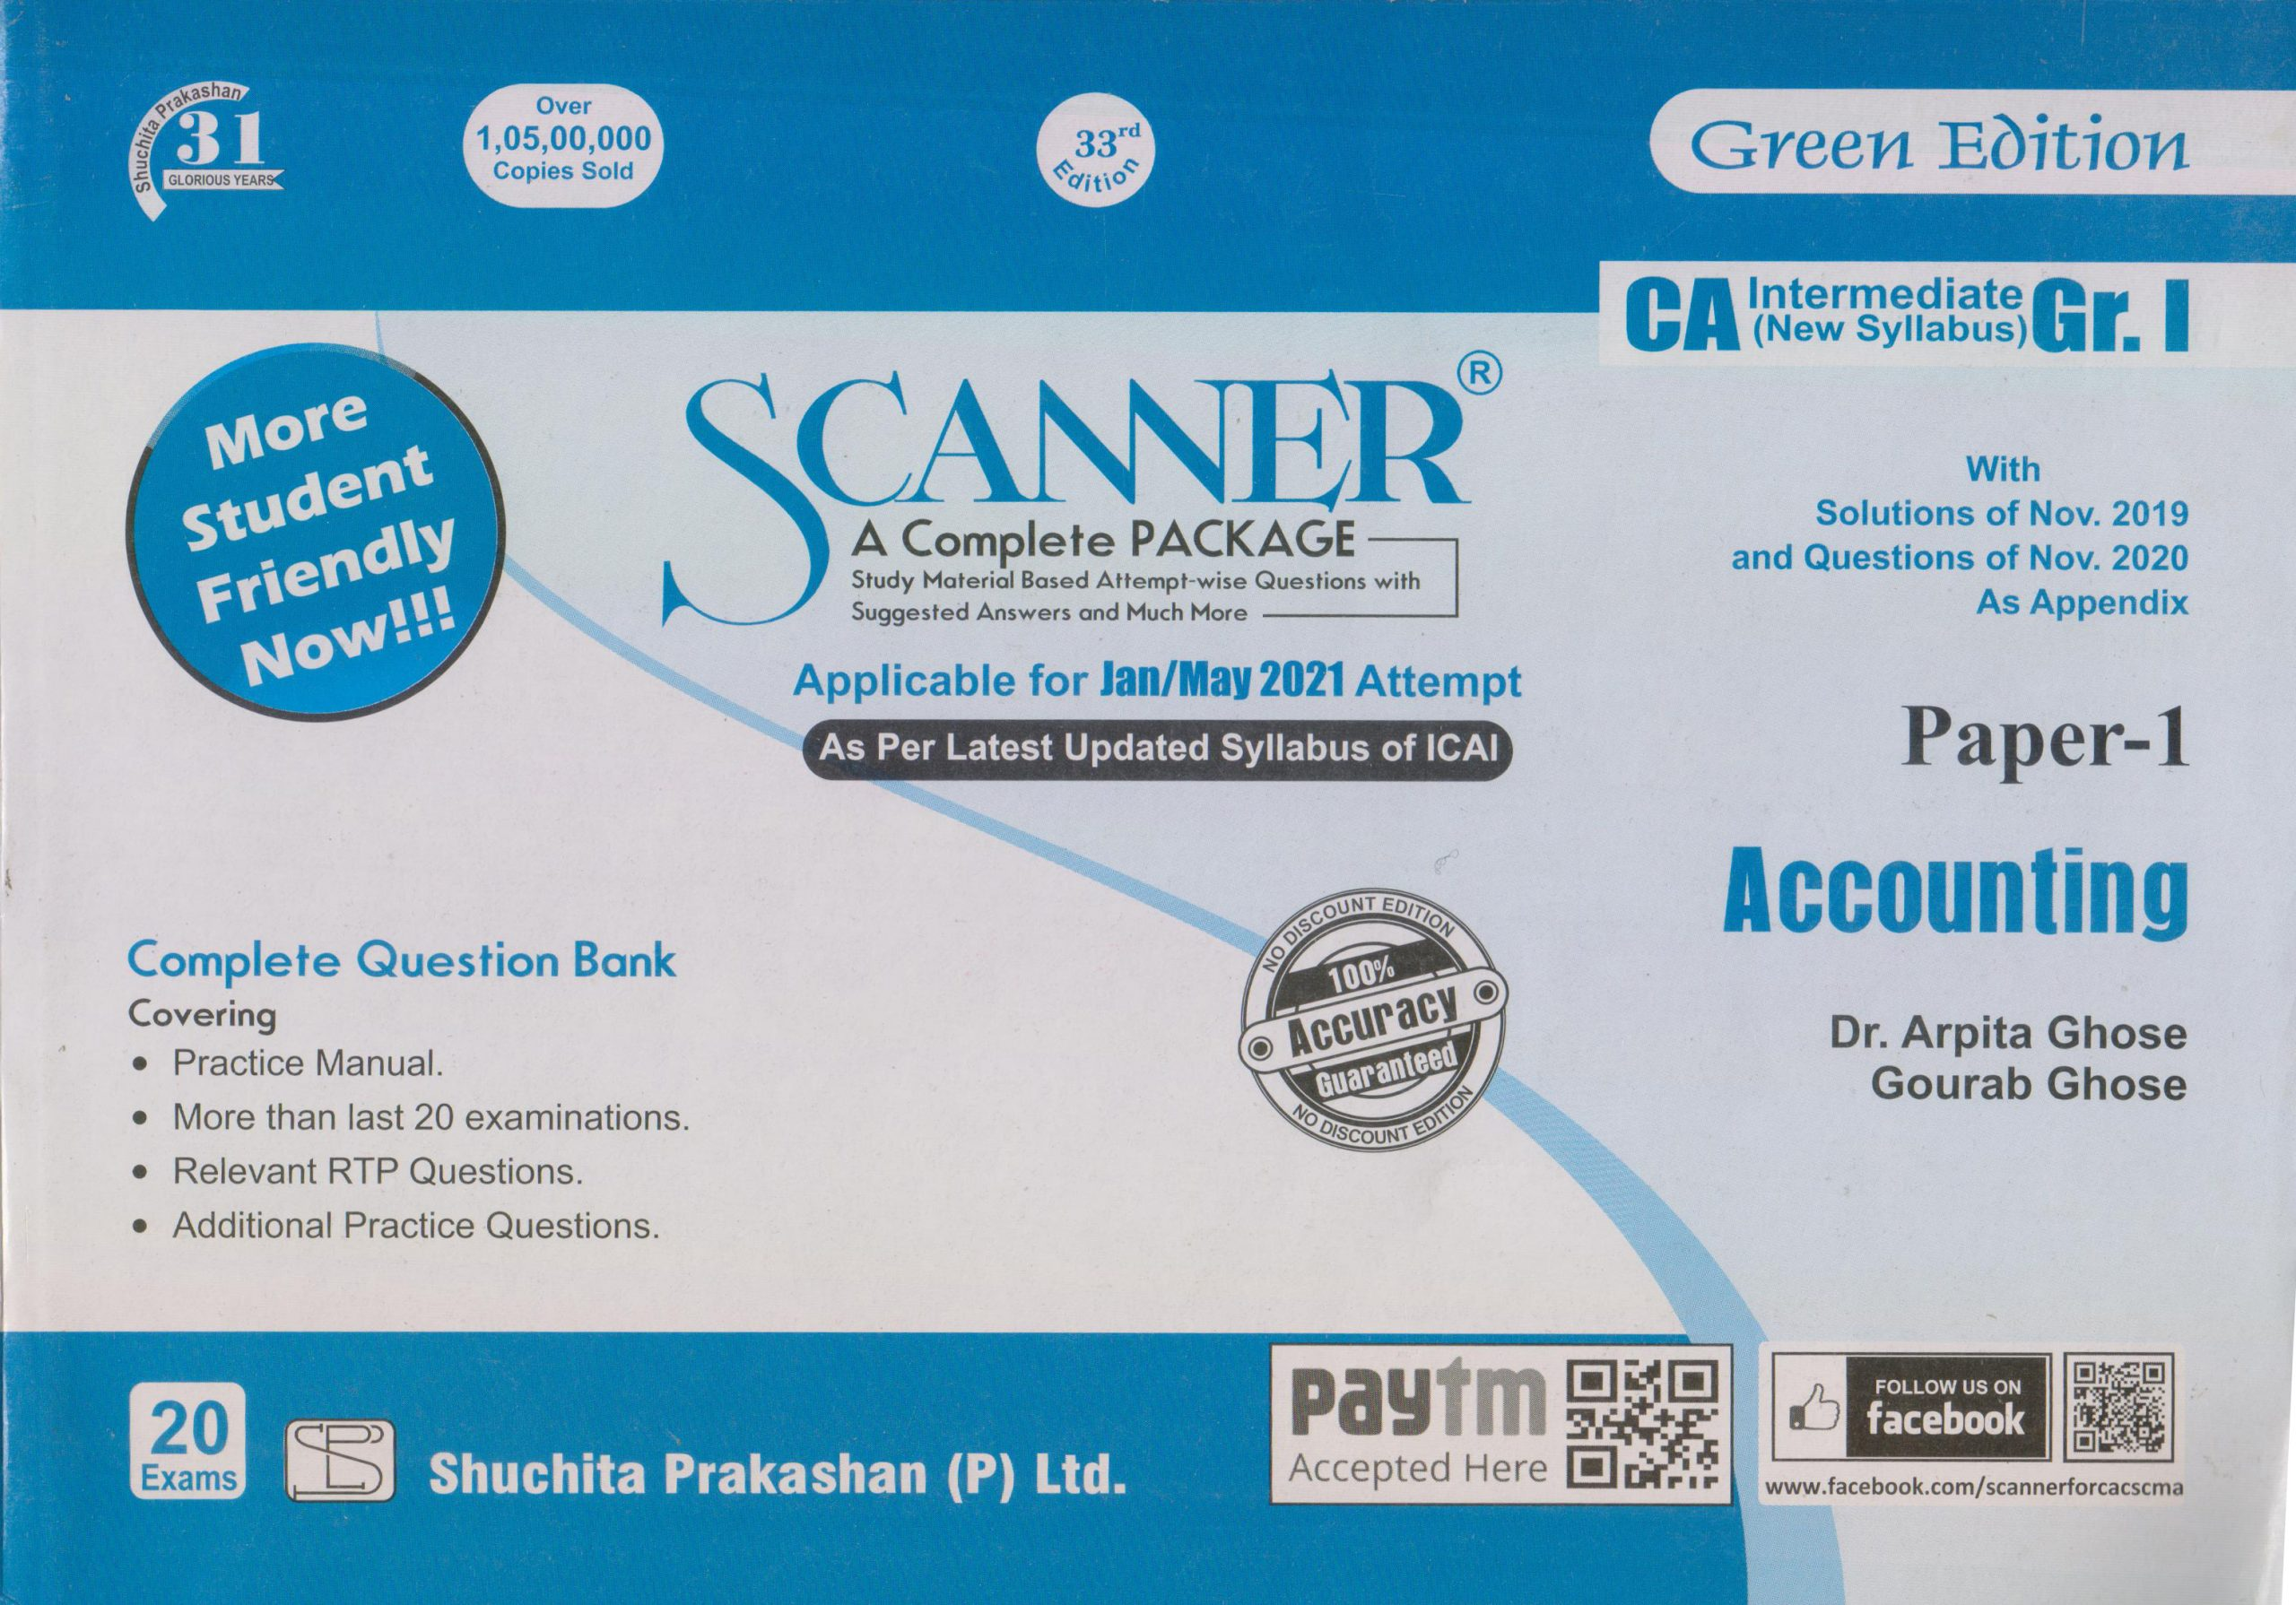 Shuchita CA Inter Group I Paper-1 Solved Scanner Accounting for May June 2021 ATTEMPT